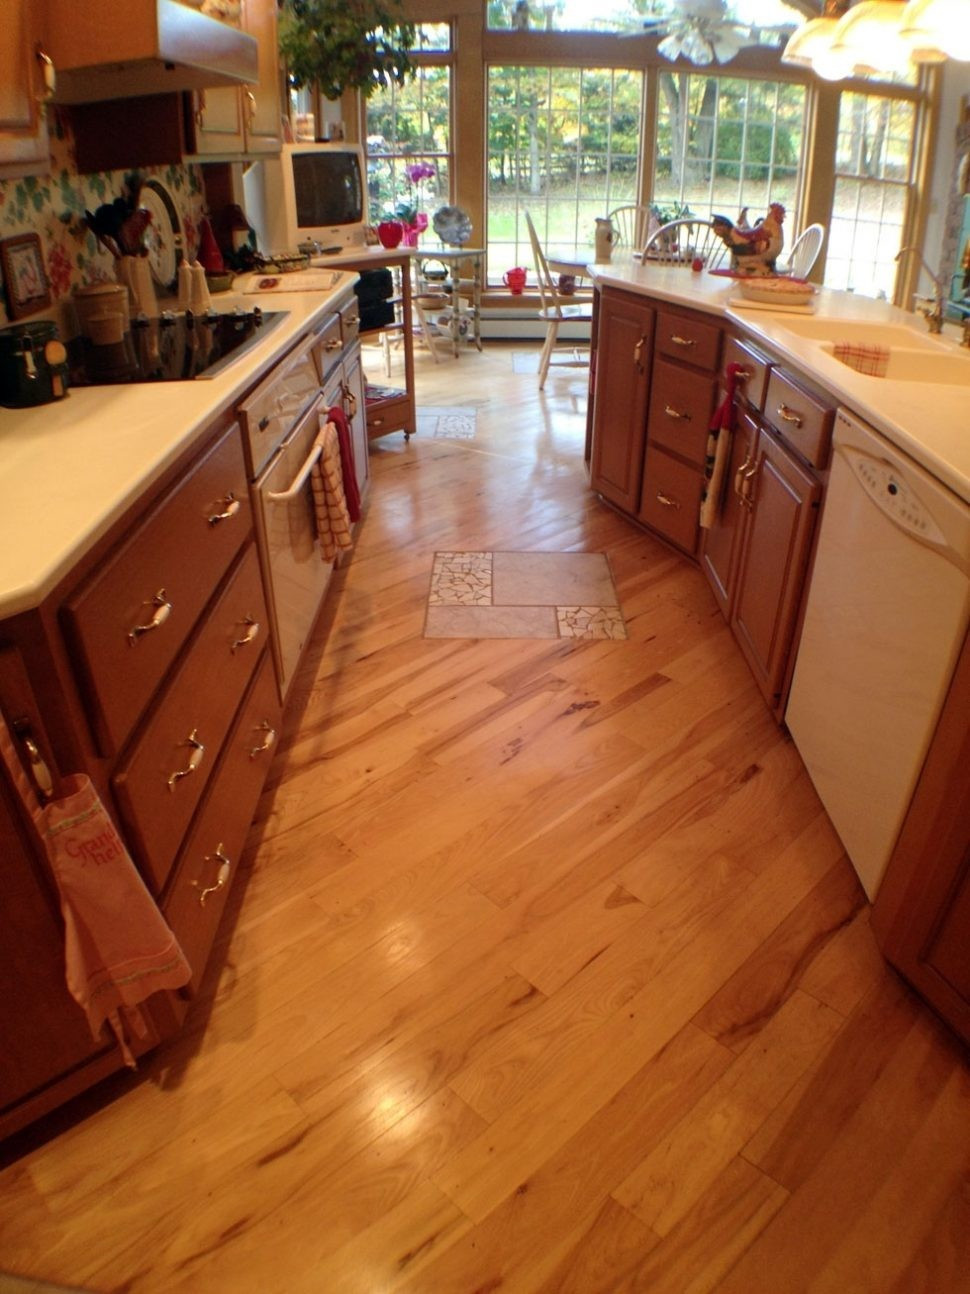 Bamboo Hardwood Flooring Cost Of 17 New Cost Of Hardwood Floor Installation Pics Dizpos Com In 16 Lovely S Hardwood Floor Installation Cost